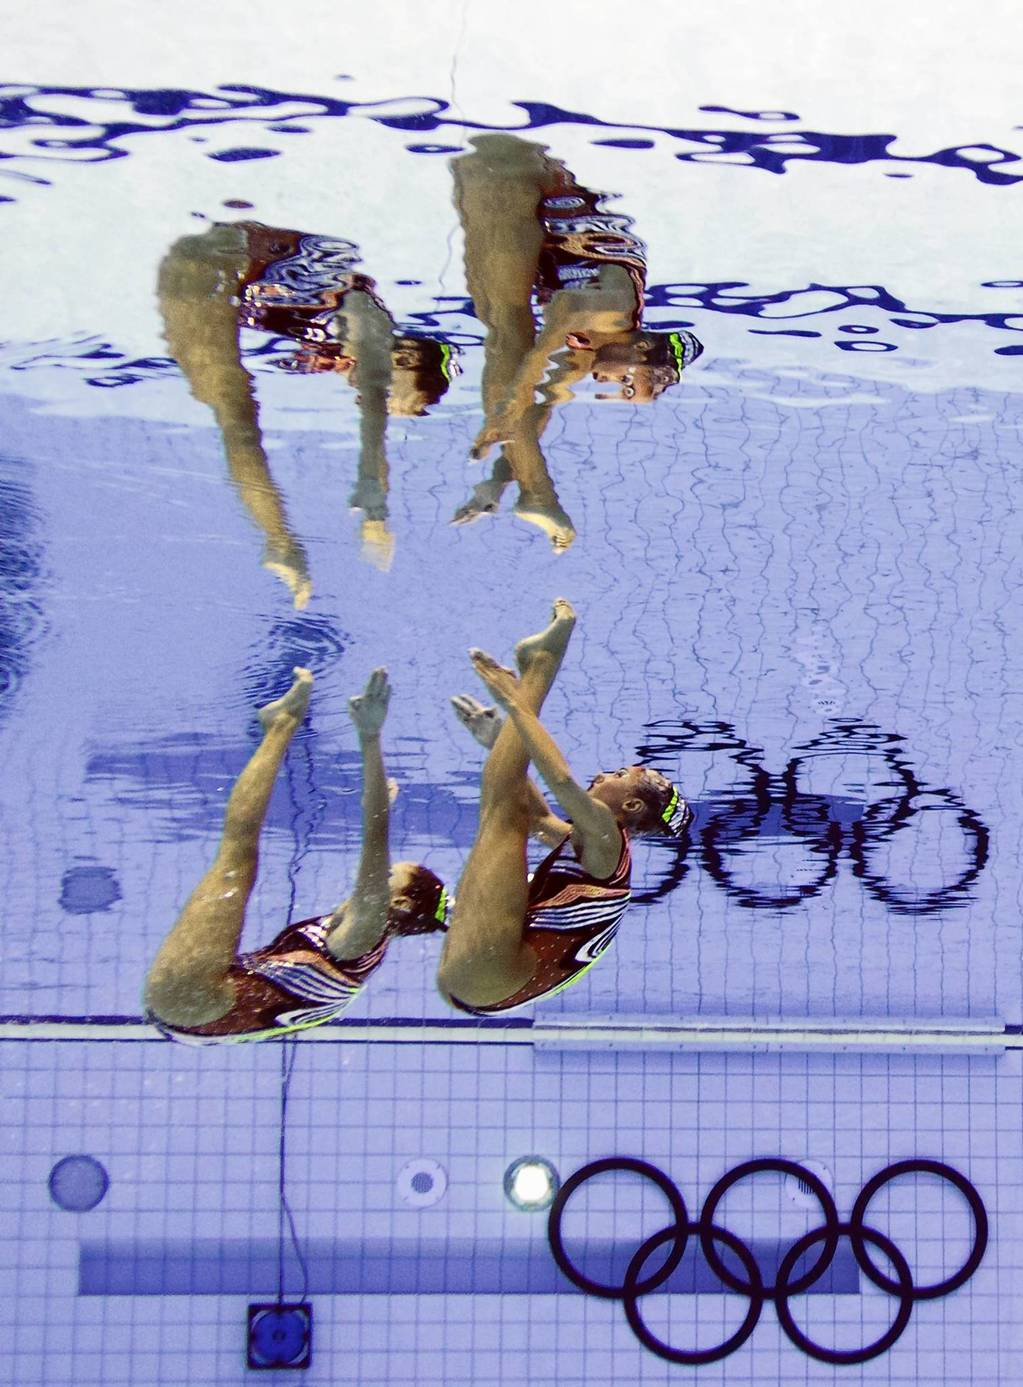 Greece's Evangelia Platanioti and Despoina Solomou compete in the duets free routine final during the synchronized swimming competition.